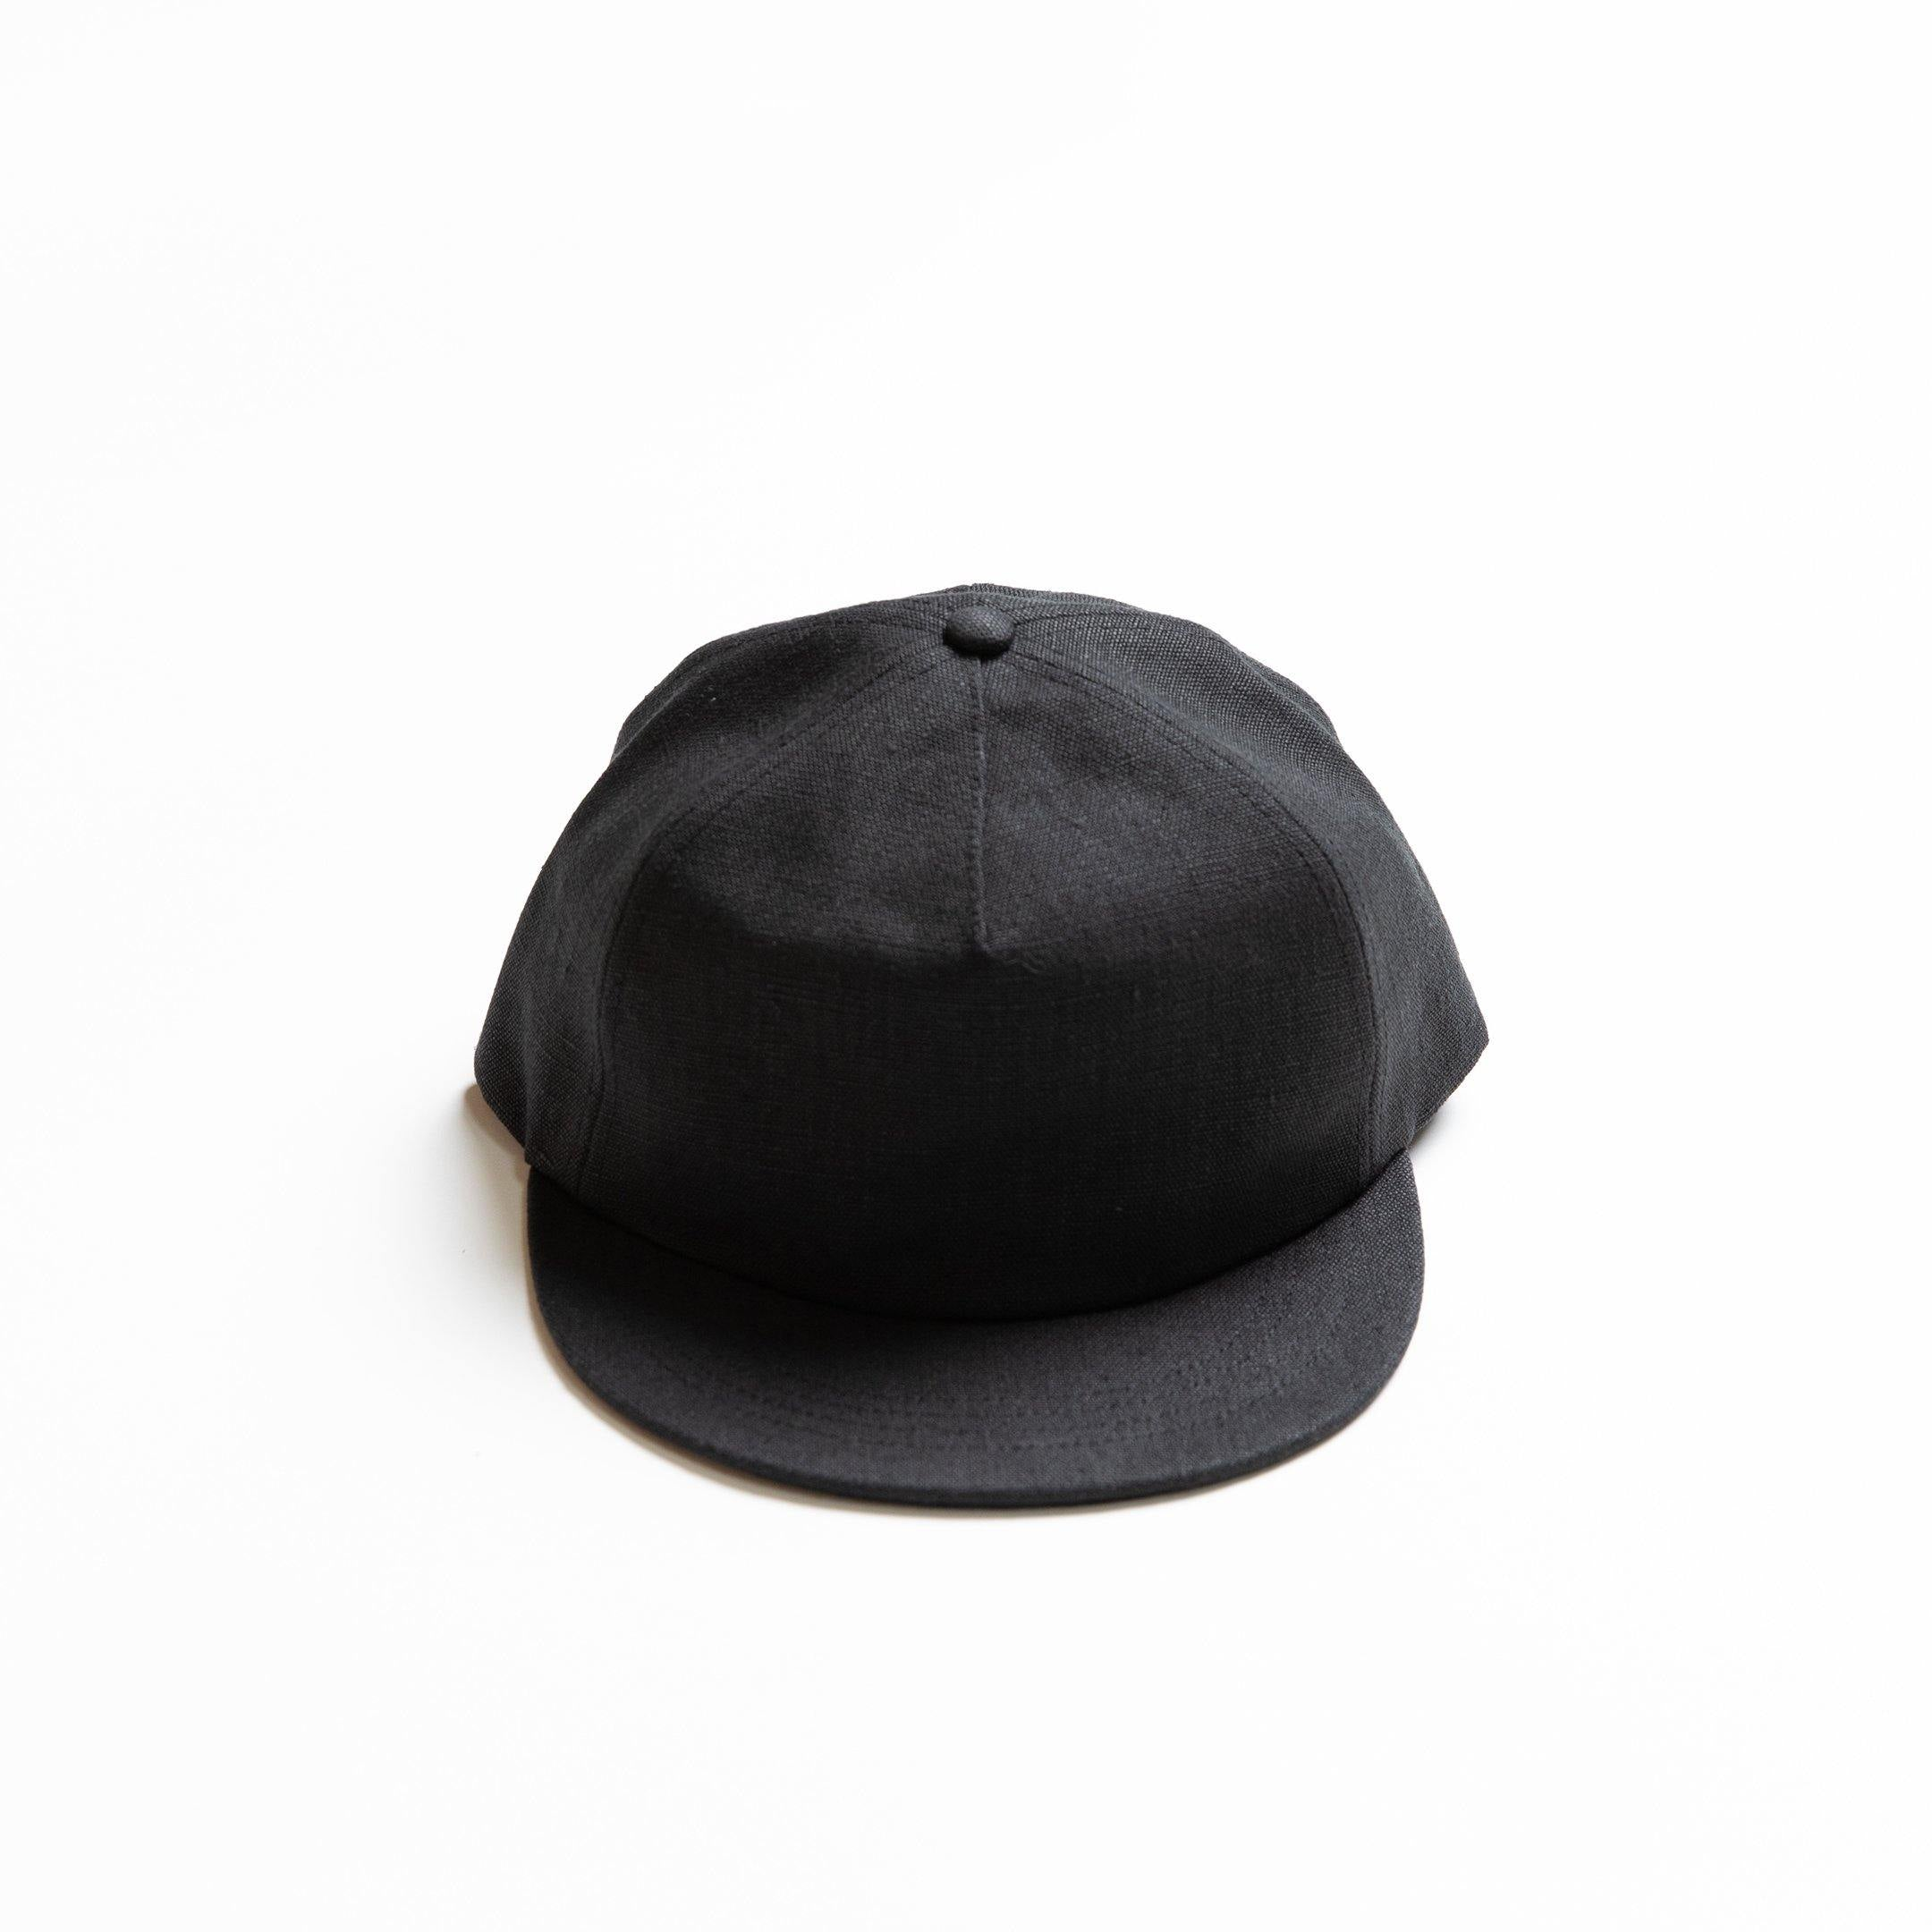 Reel Ball Cap - 100% Hemp - Black